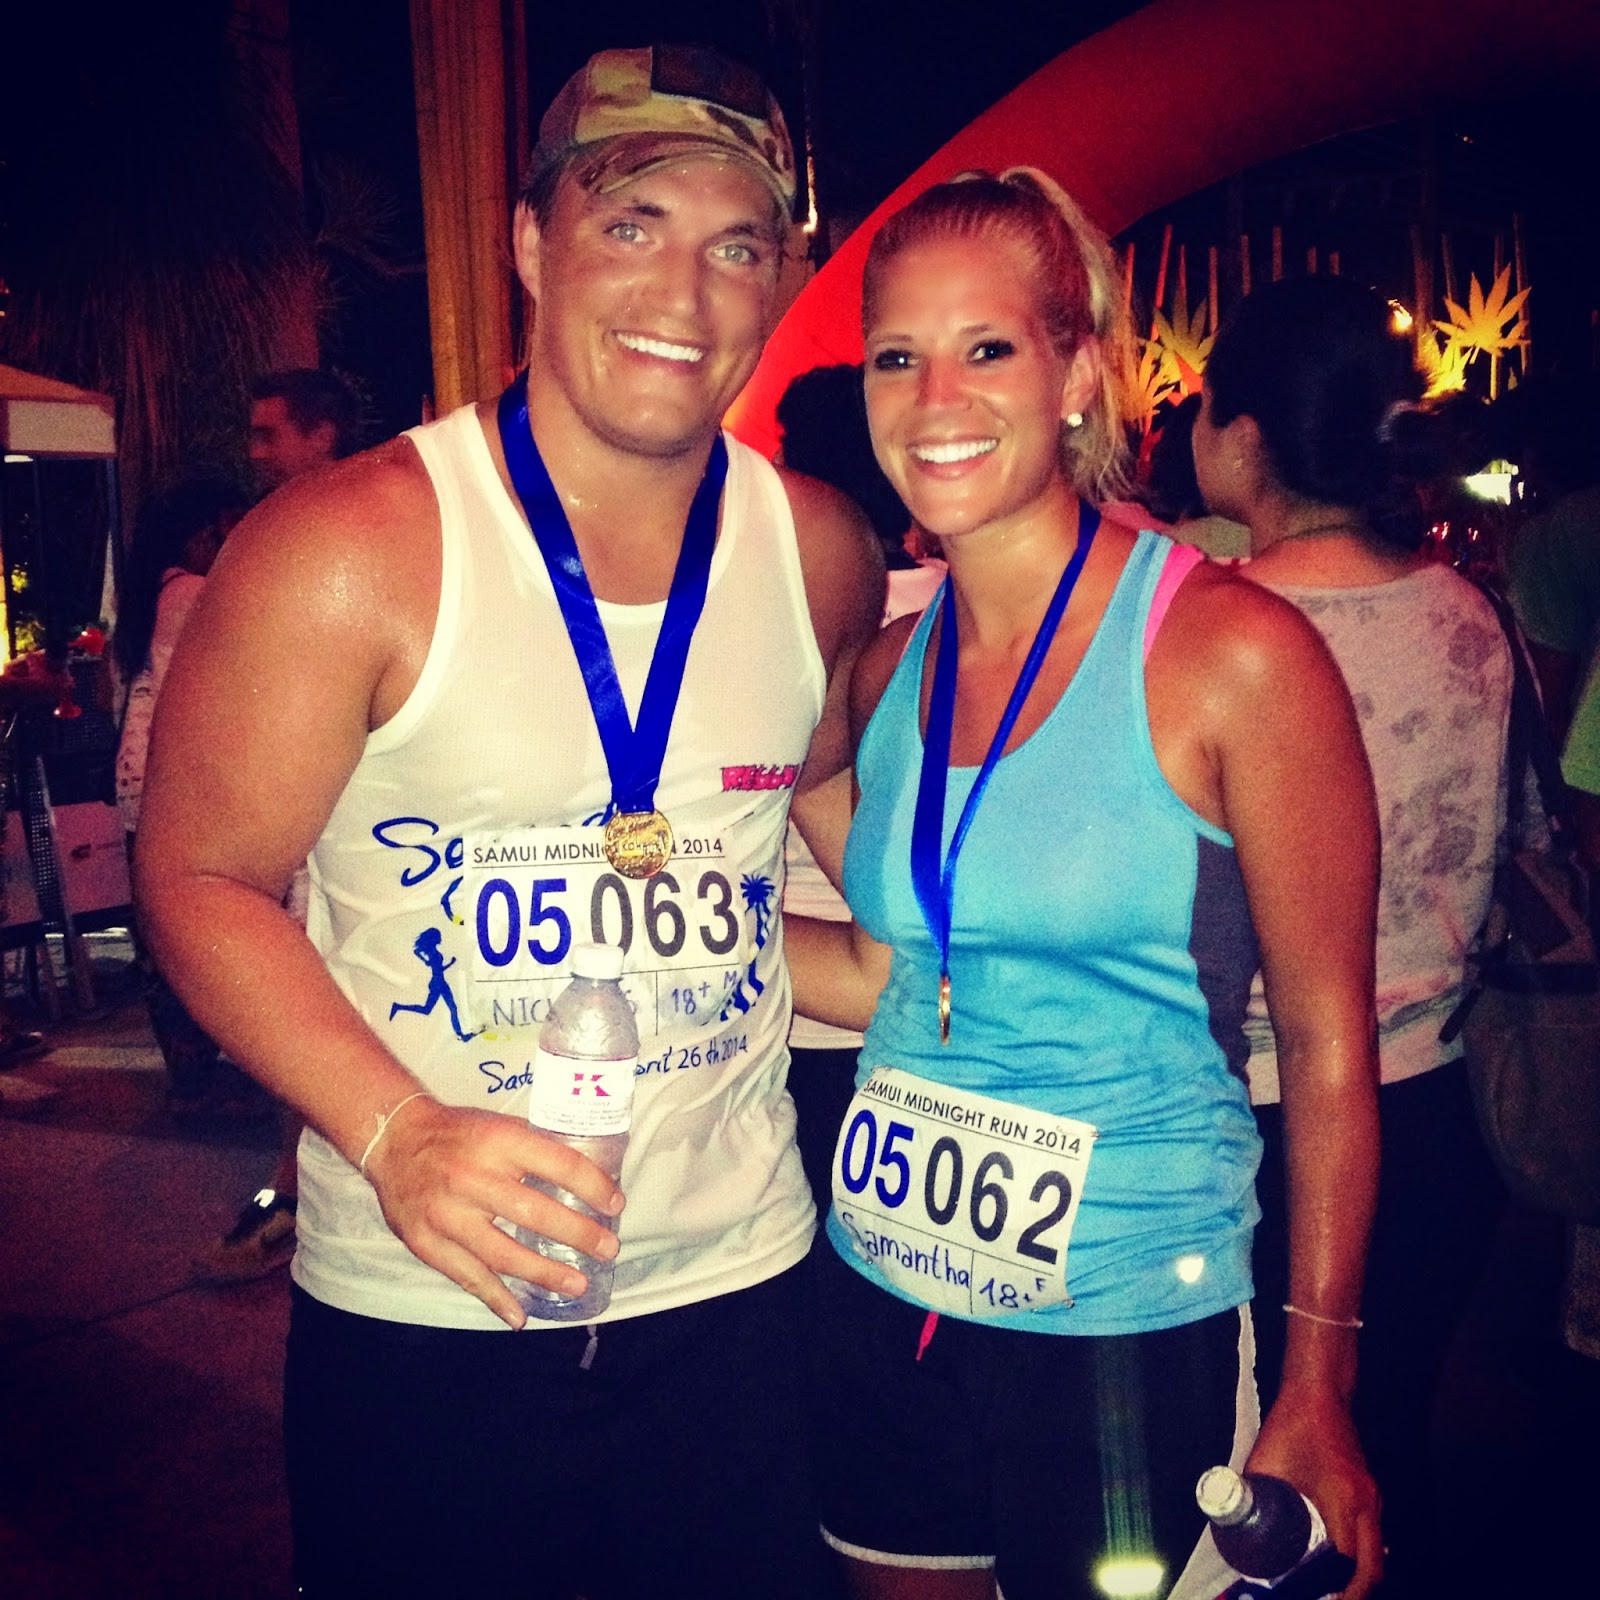 Koh Samui midnight run 5K